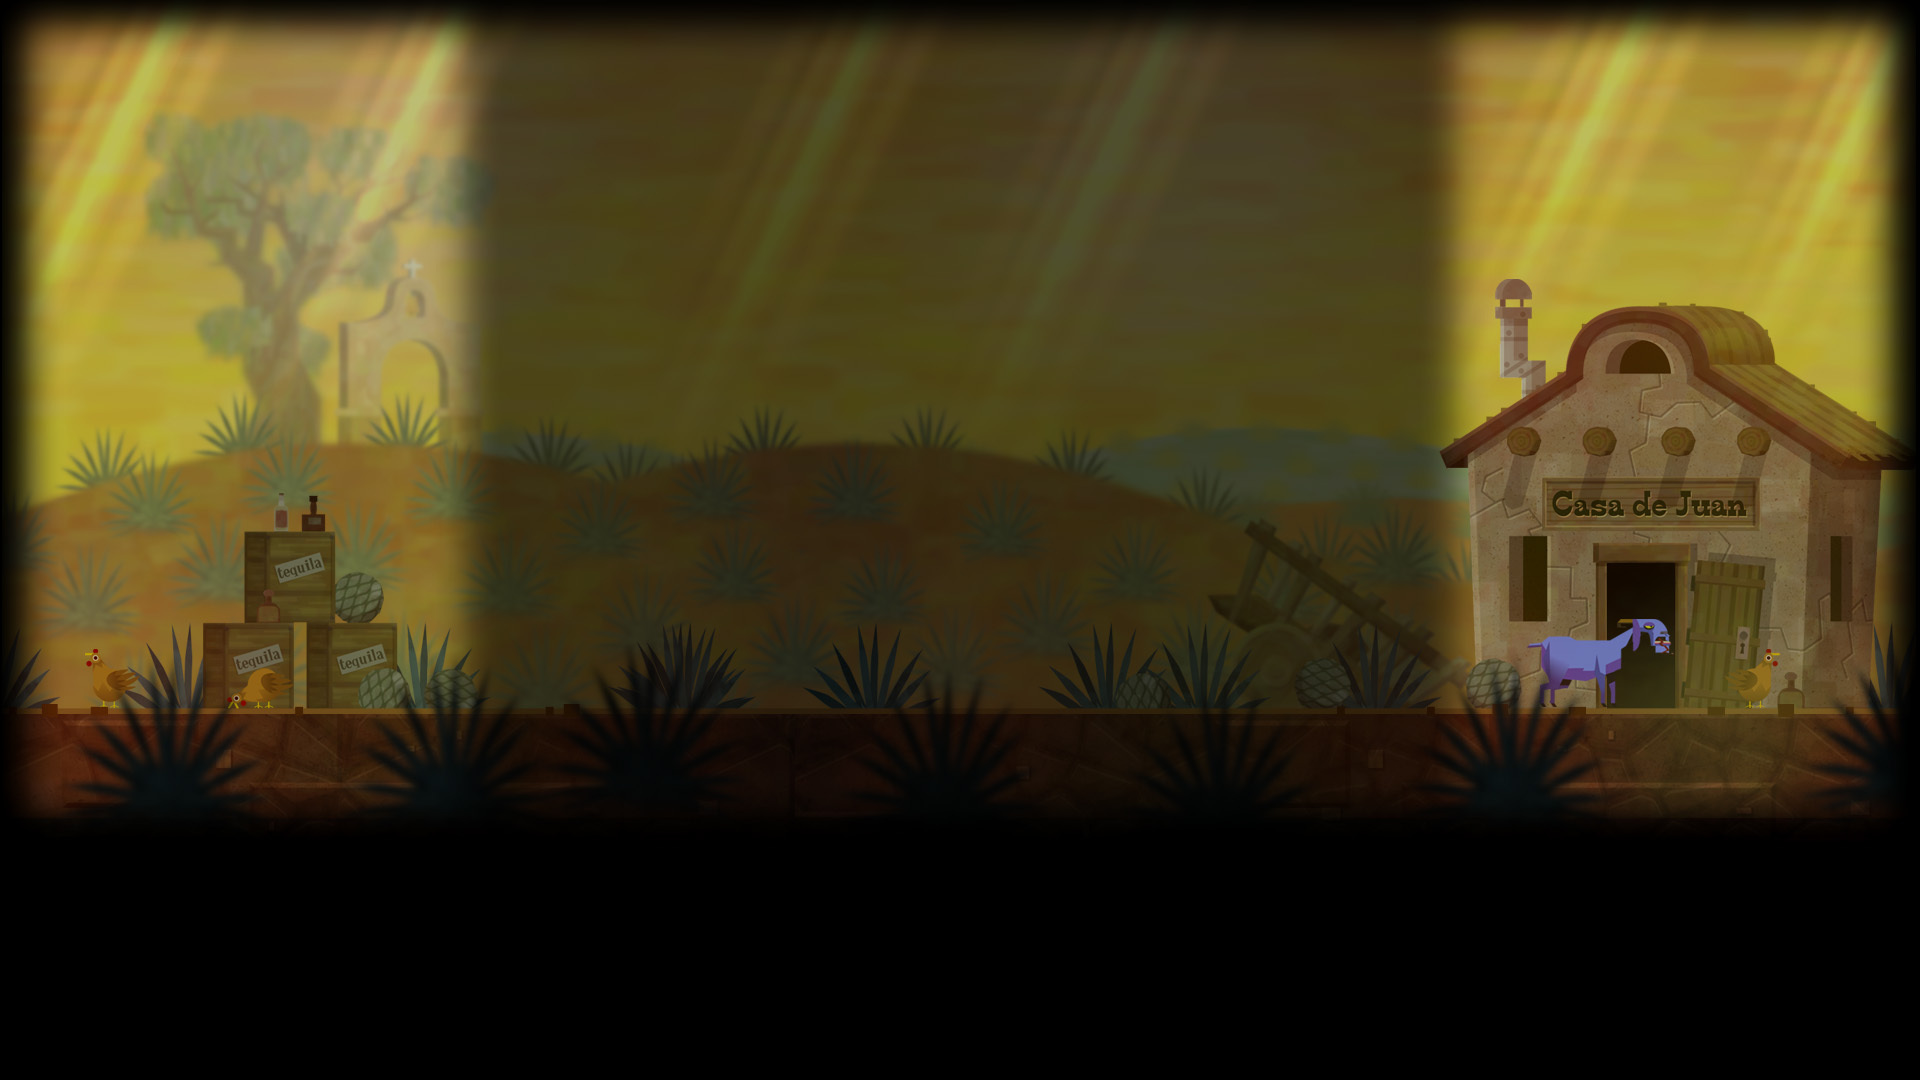 Guacamelee HD Wallpaper Background Image 1920x1080 ID 1920x1080